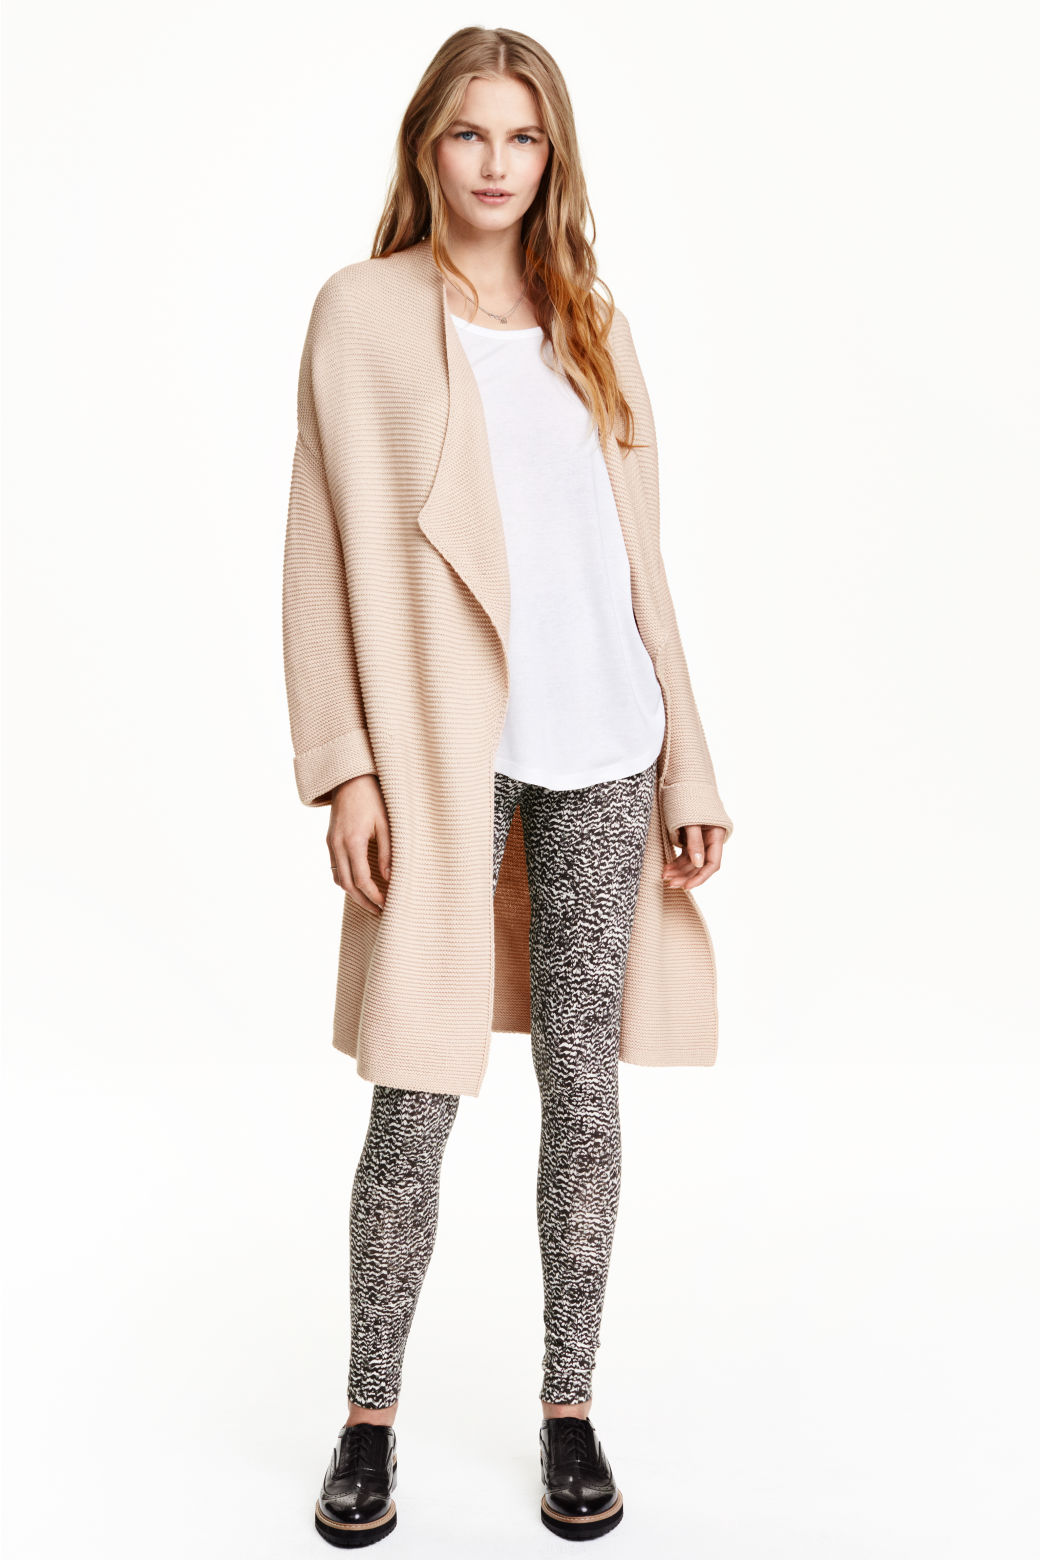 Leggings - Shop the latest women's fashion online | H&M